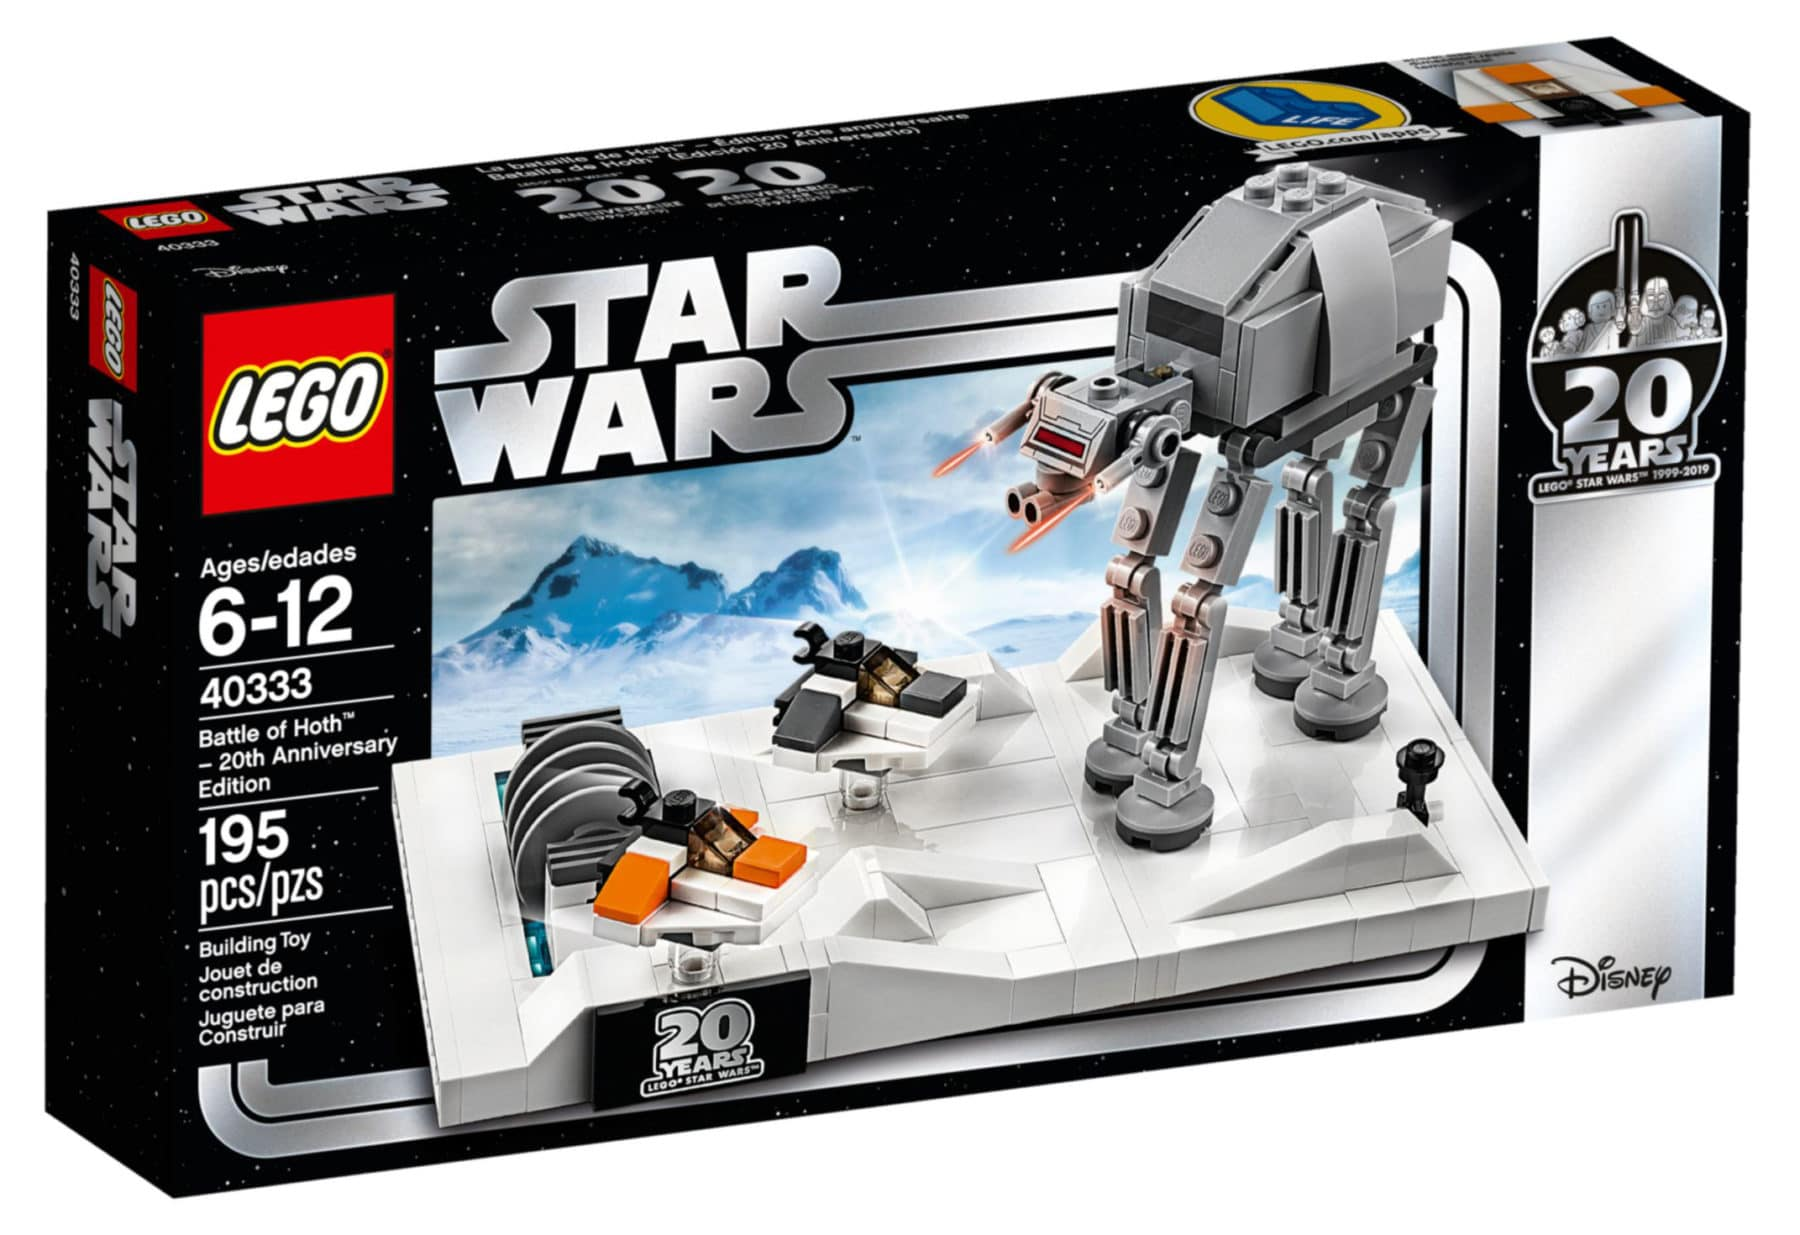 LEGO 40333 Battle of Hoth Box